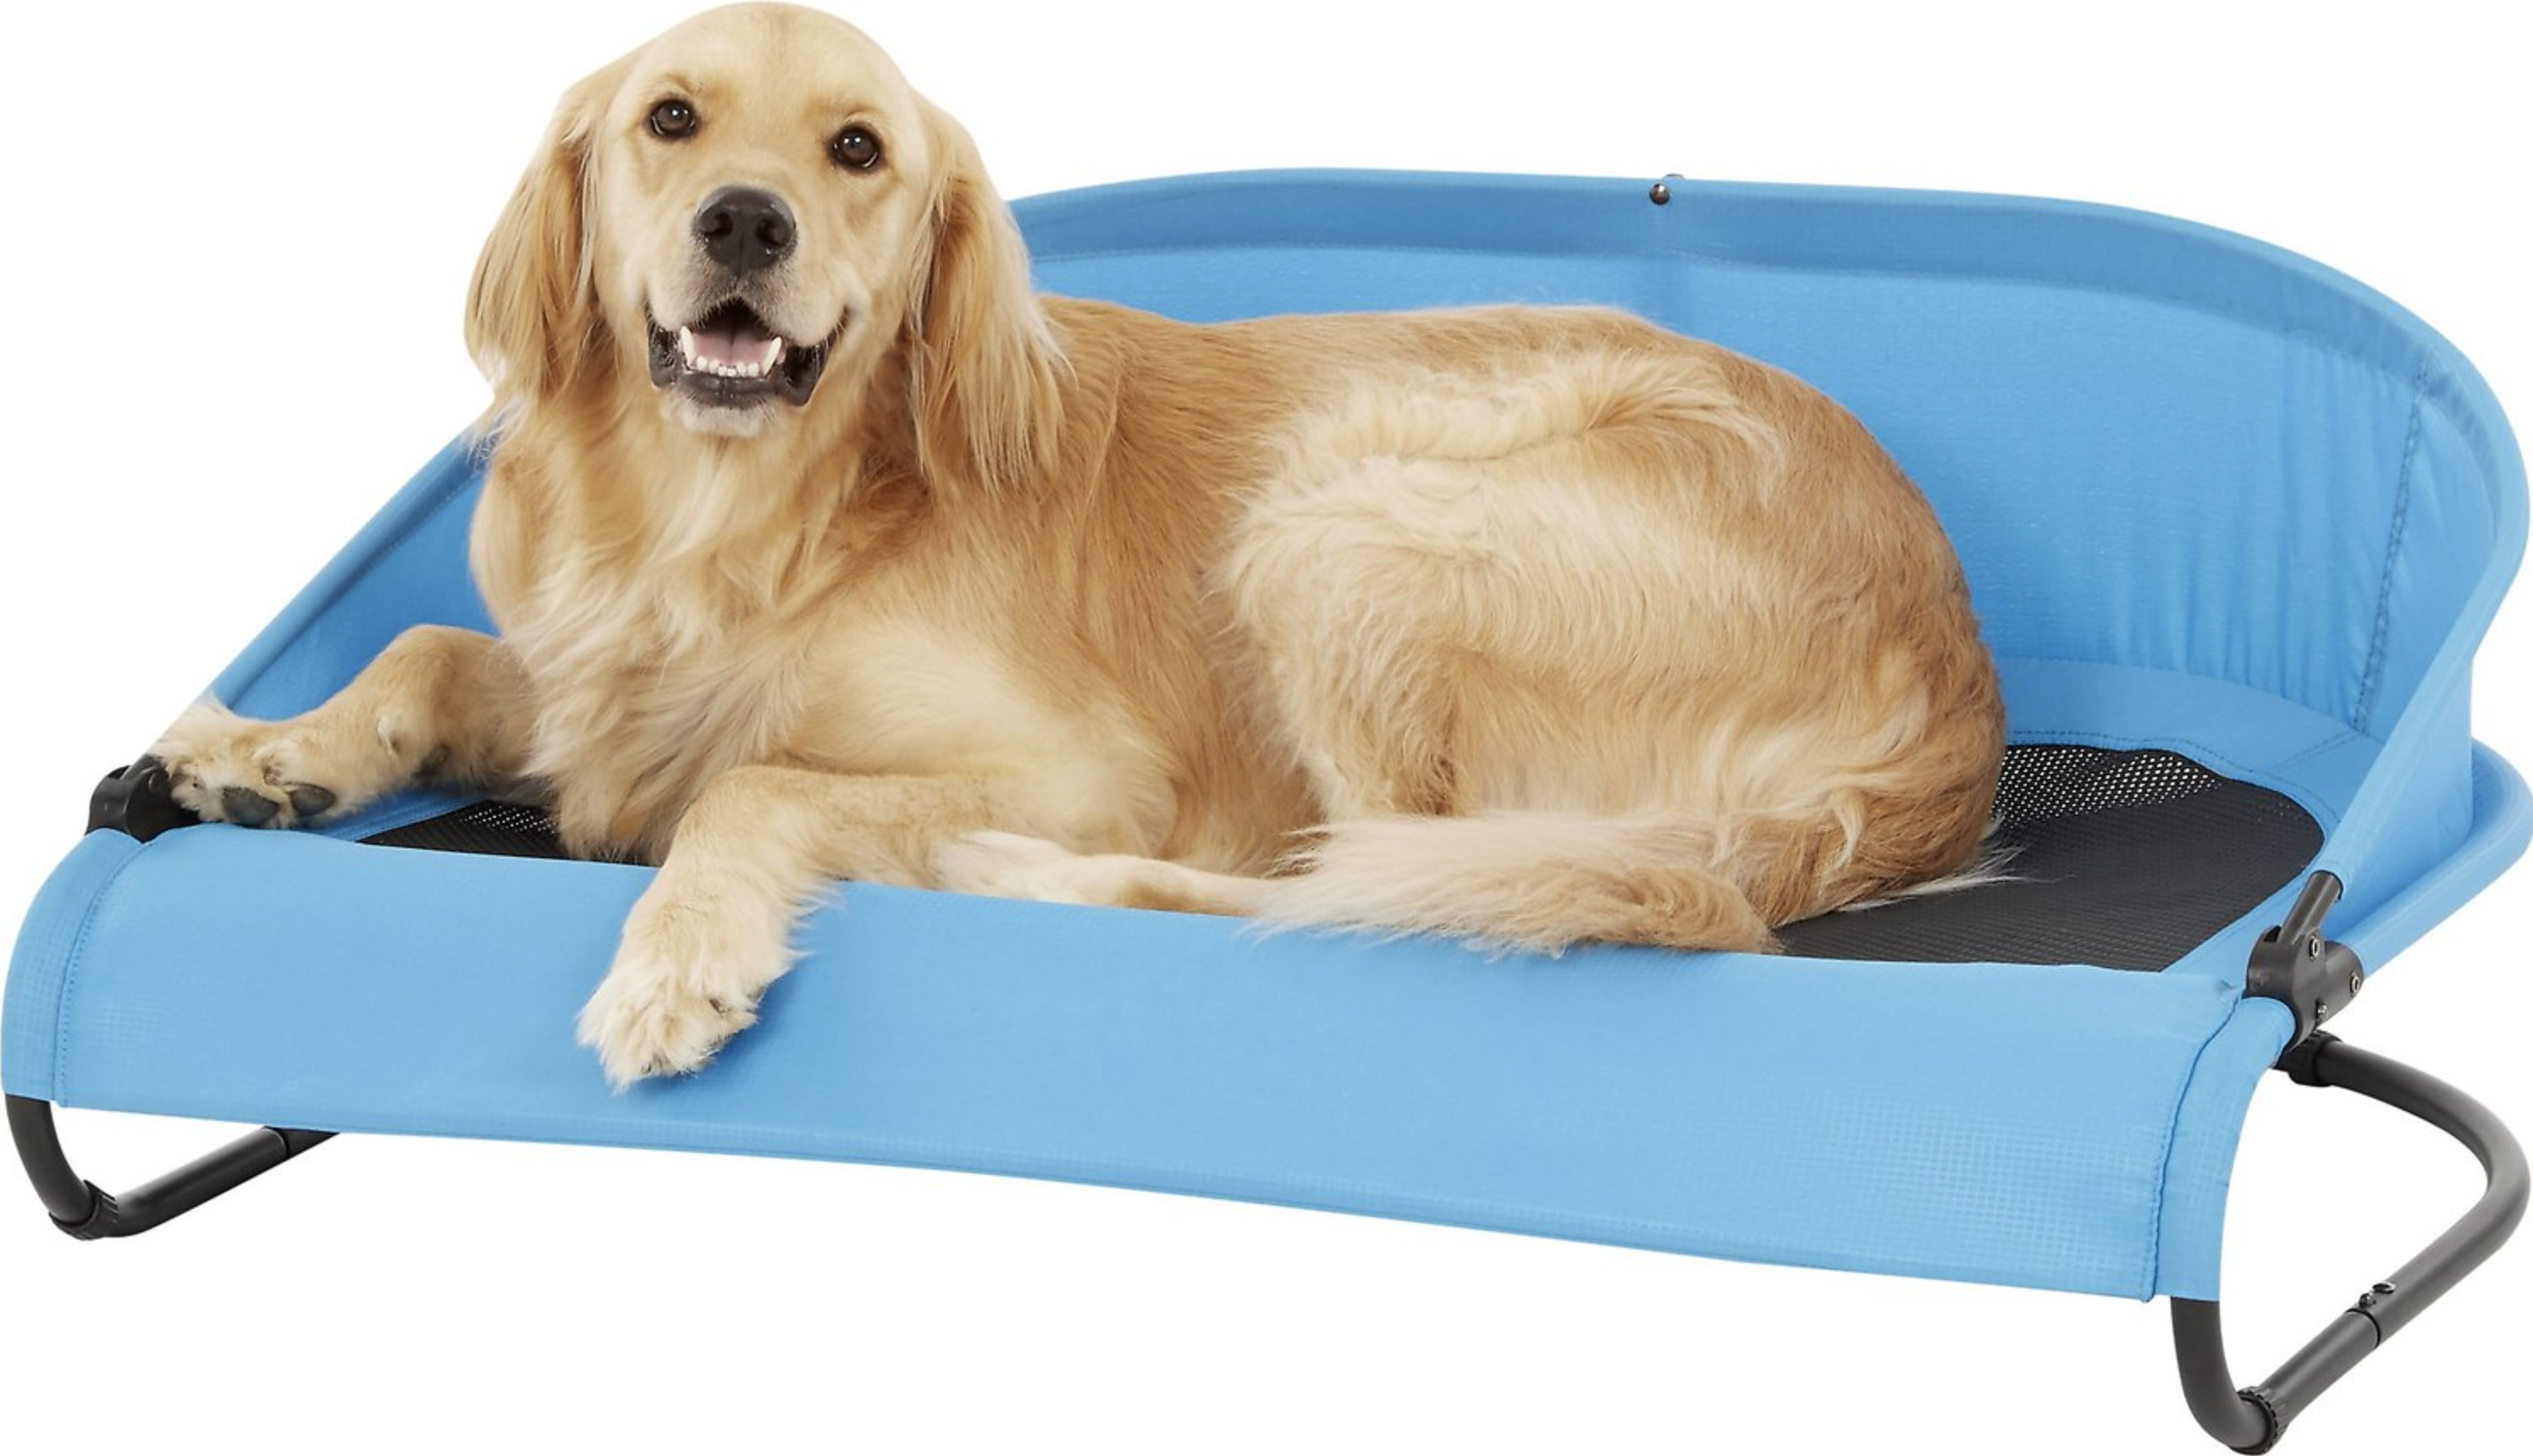 Best Cooling Beds for Dogs feat. GEN7PETS Cool-Air Cot Elevated Dog Bed, image via Gen7Pets/Chewy